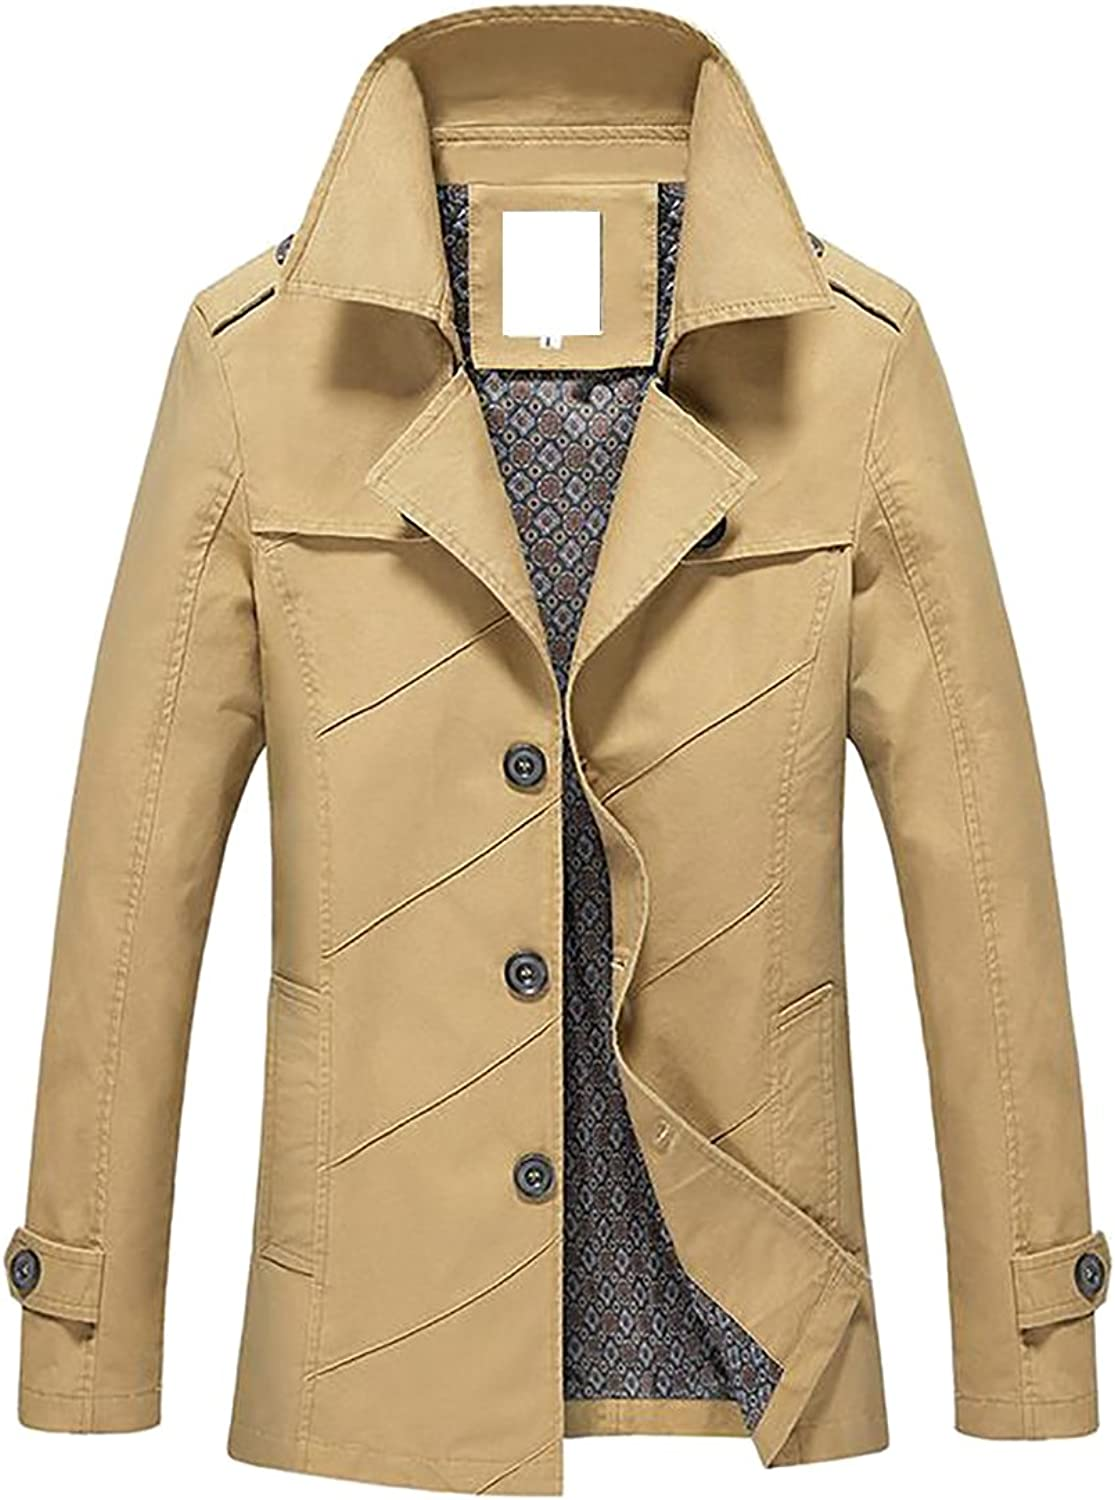 Cruiize Men's Slim Fit Notched Lapel Single Breasted Trench Coat Outwear